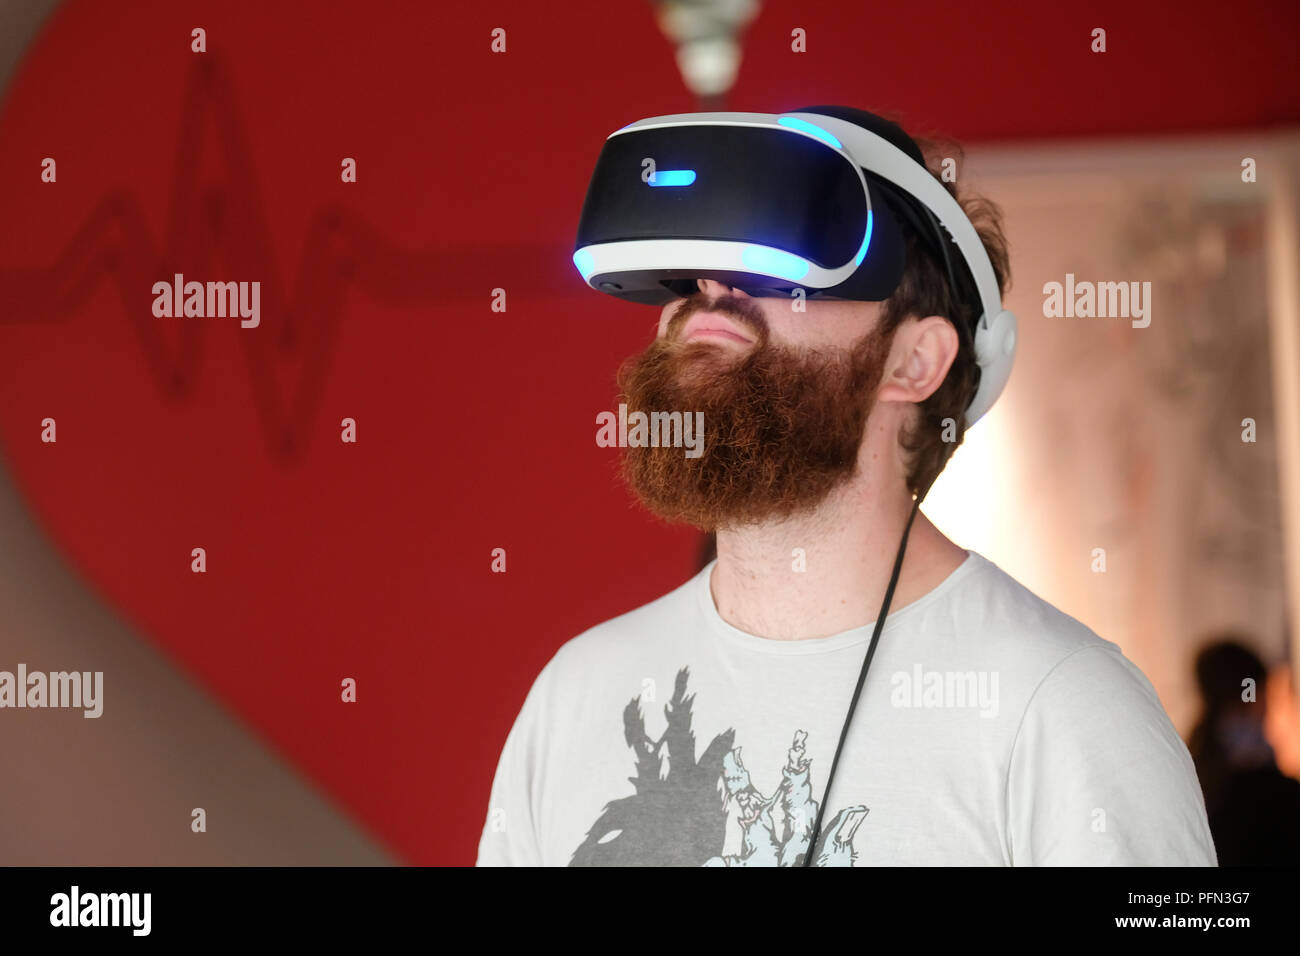 Visitor try out virtual reality view goggles, exhibition at the Heinz Nixdorf MuseumsForum (HNF) in Paderborn, Germany - Stock Image